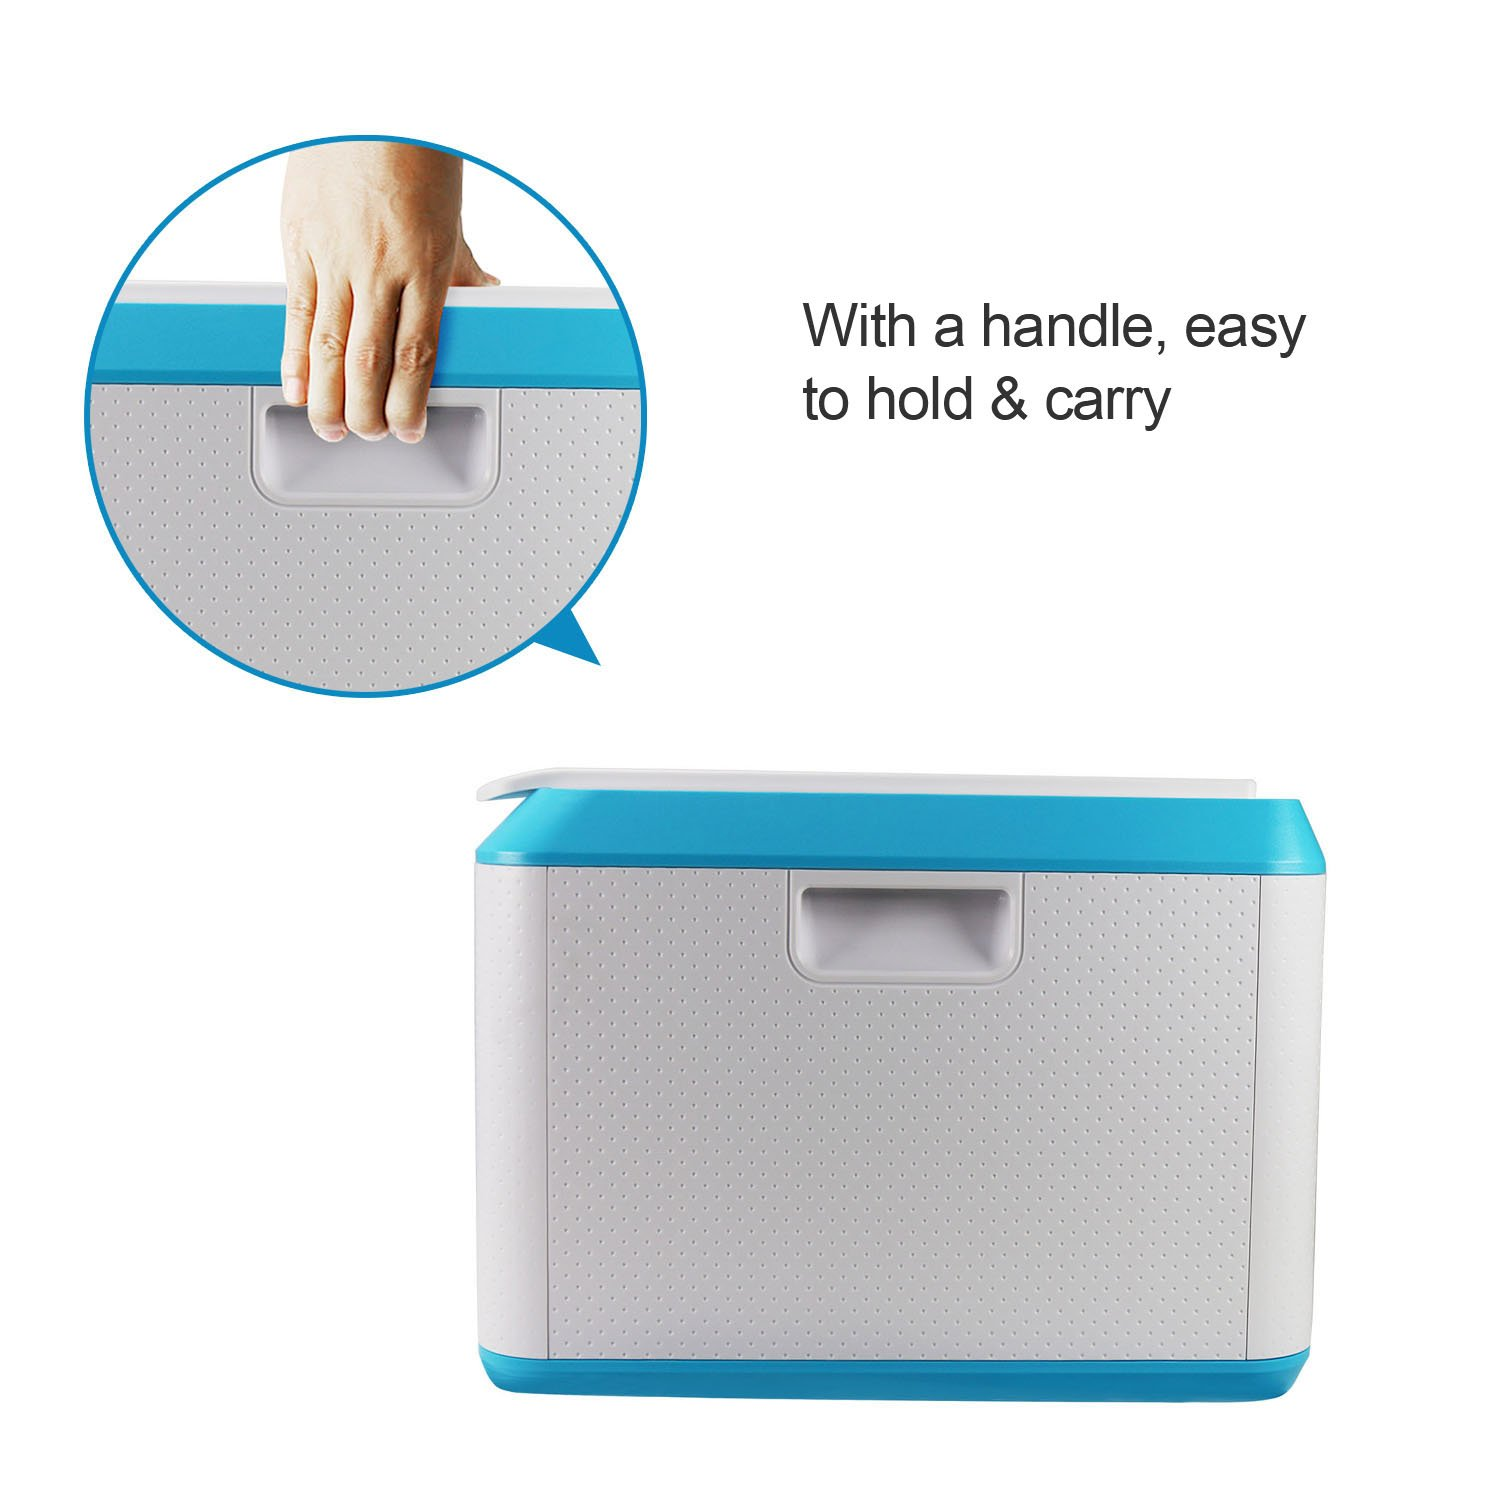 EVERTOP Extra Large Deck Box for Home, Office, Car, White with Code Lock (A-Green) by EVERTOP (Image #5)